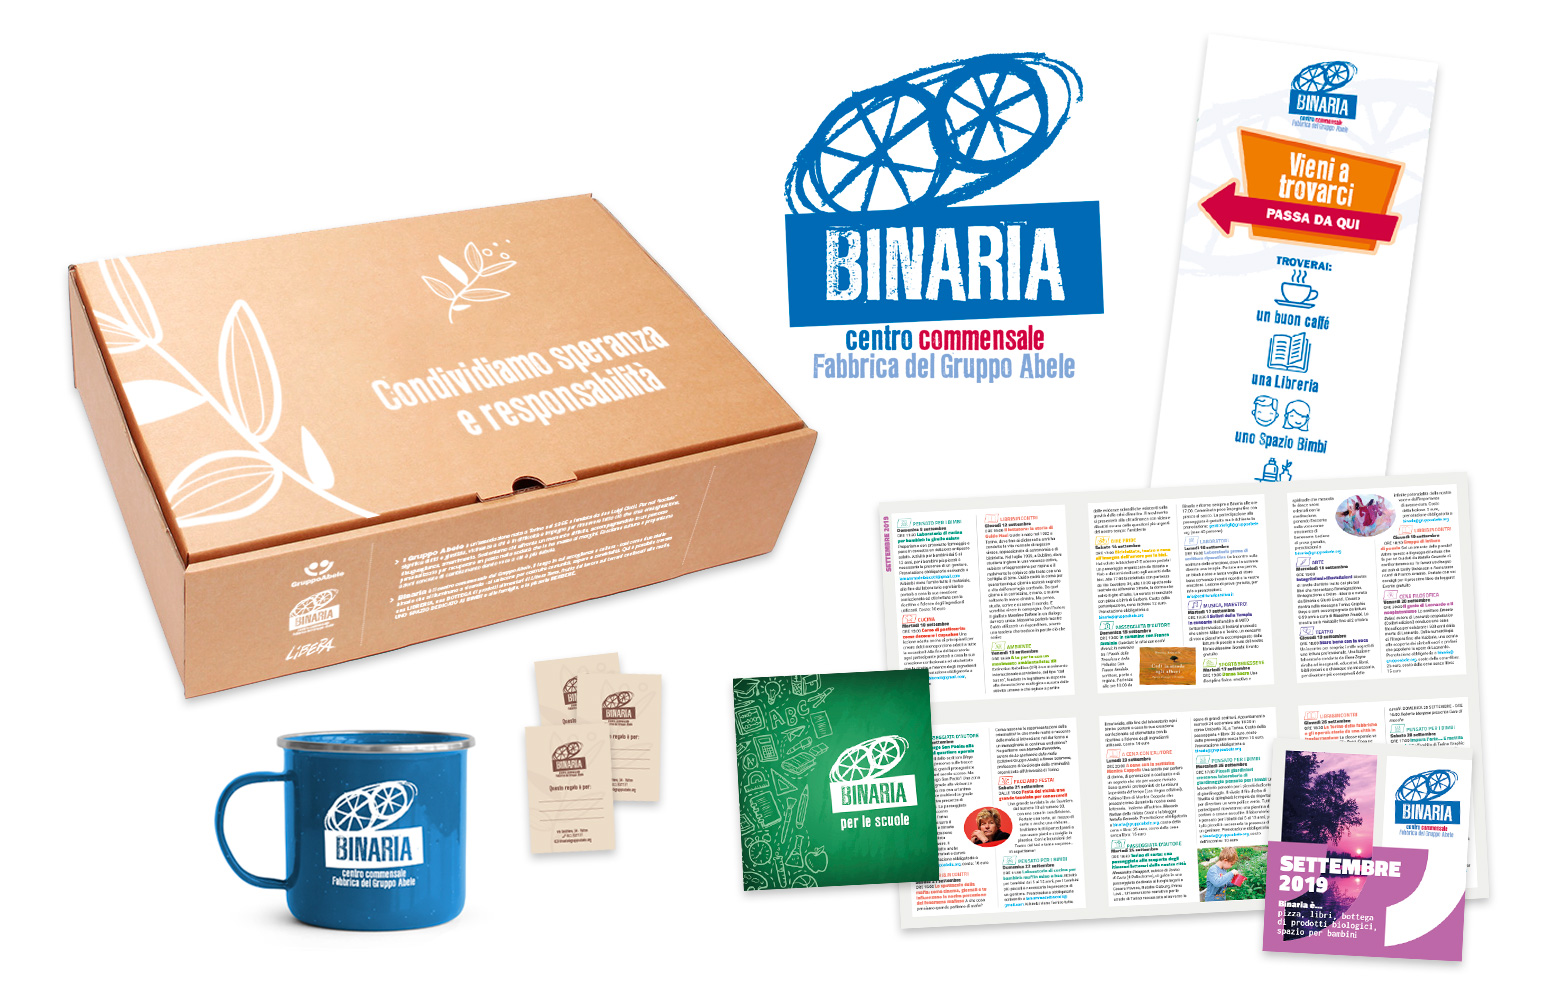 Binaria Centro Commensale del Gruppo Abele - grafica, packaging, flyer, brochure, gadget, segnaletica